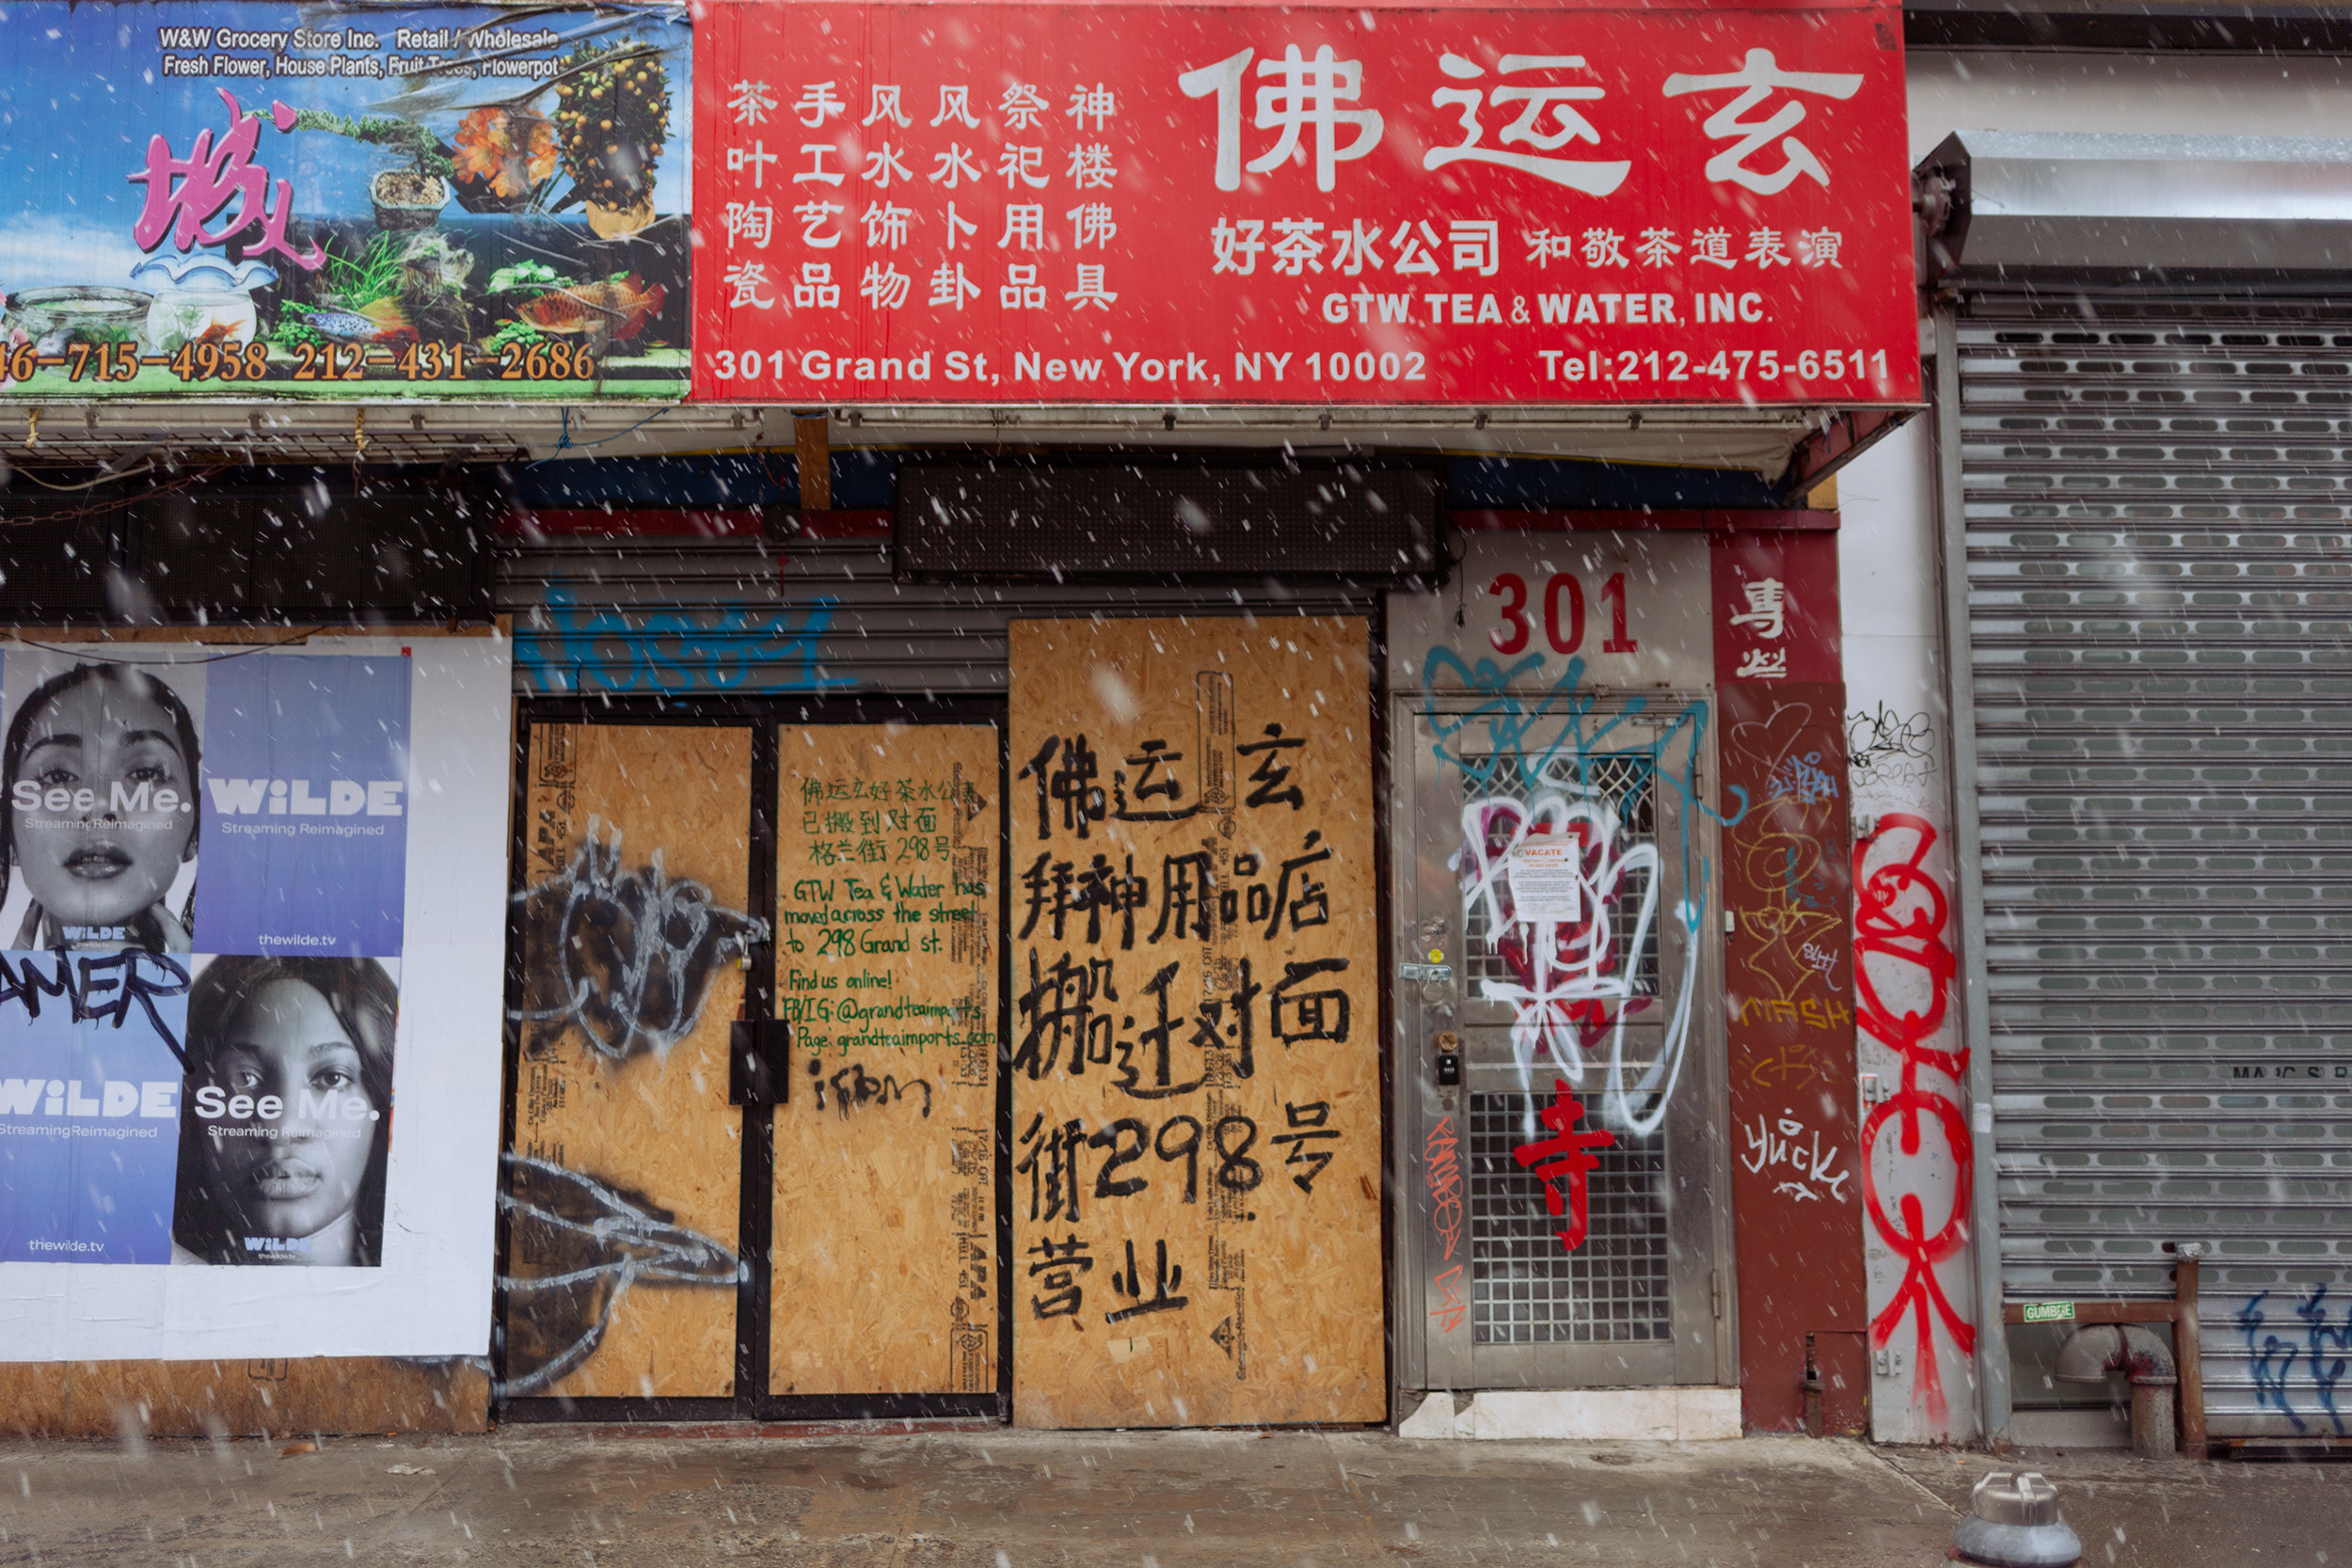 Boarded up stores with chinese characters written in paint on the boards